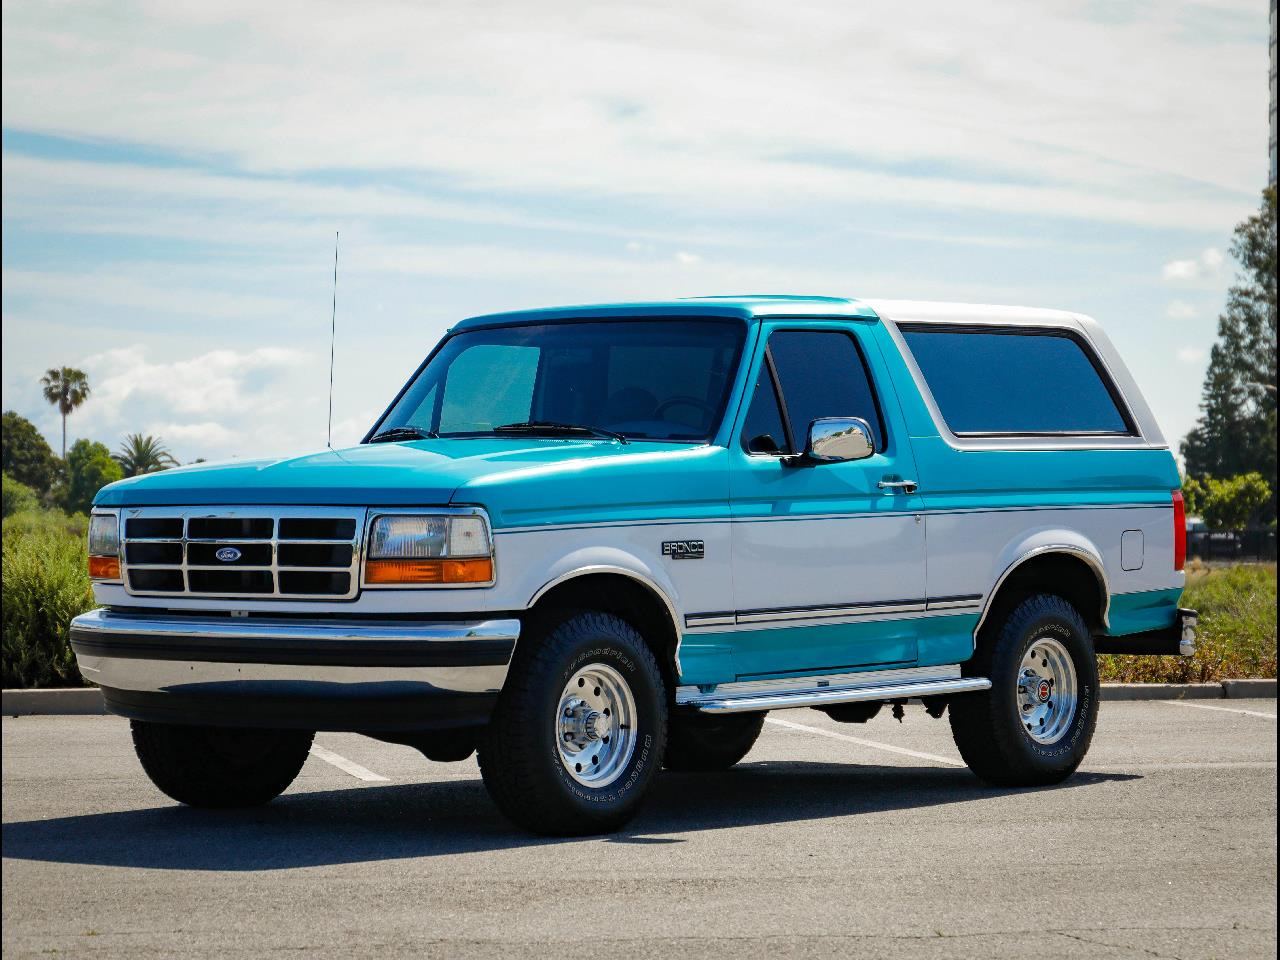 1994 ford bronco for sale classiccars com cc 1218323 1994 ford bronco for sale classiccars